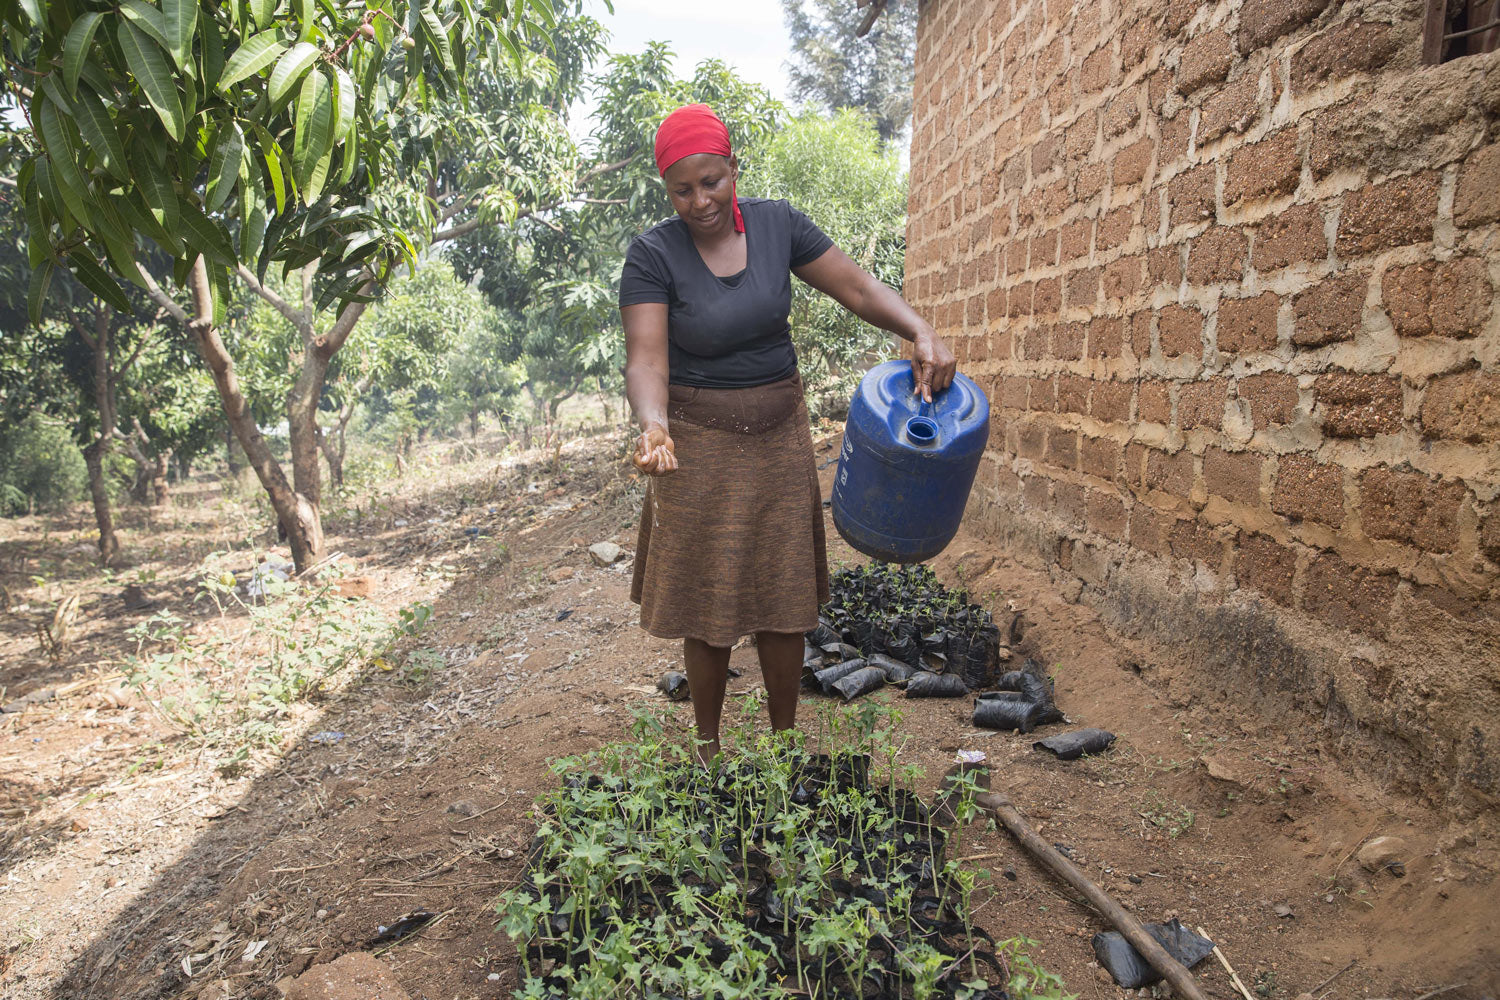 African woman waters small plants from a blue canister